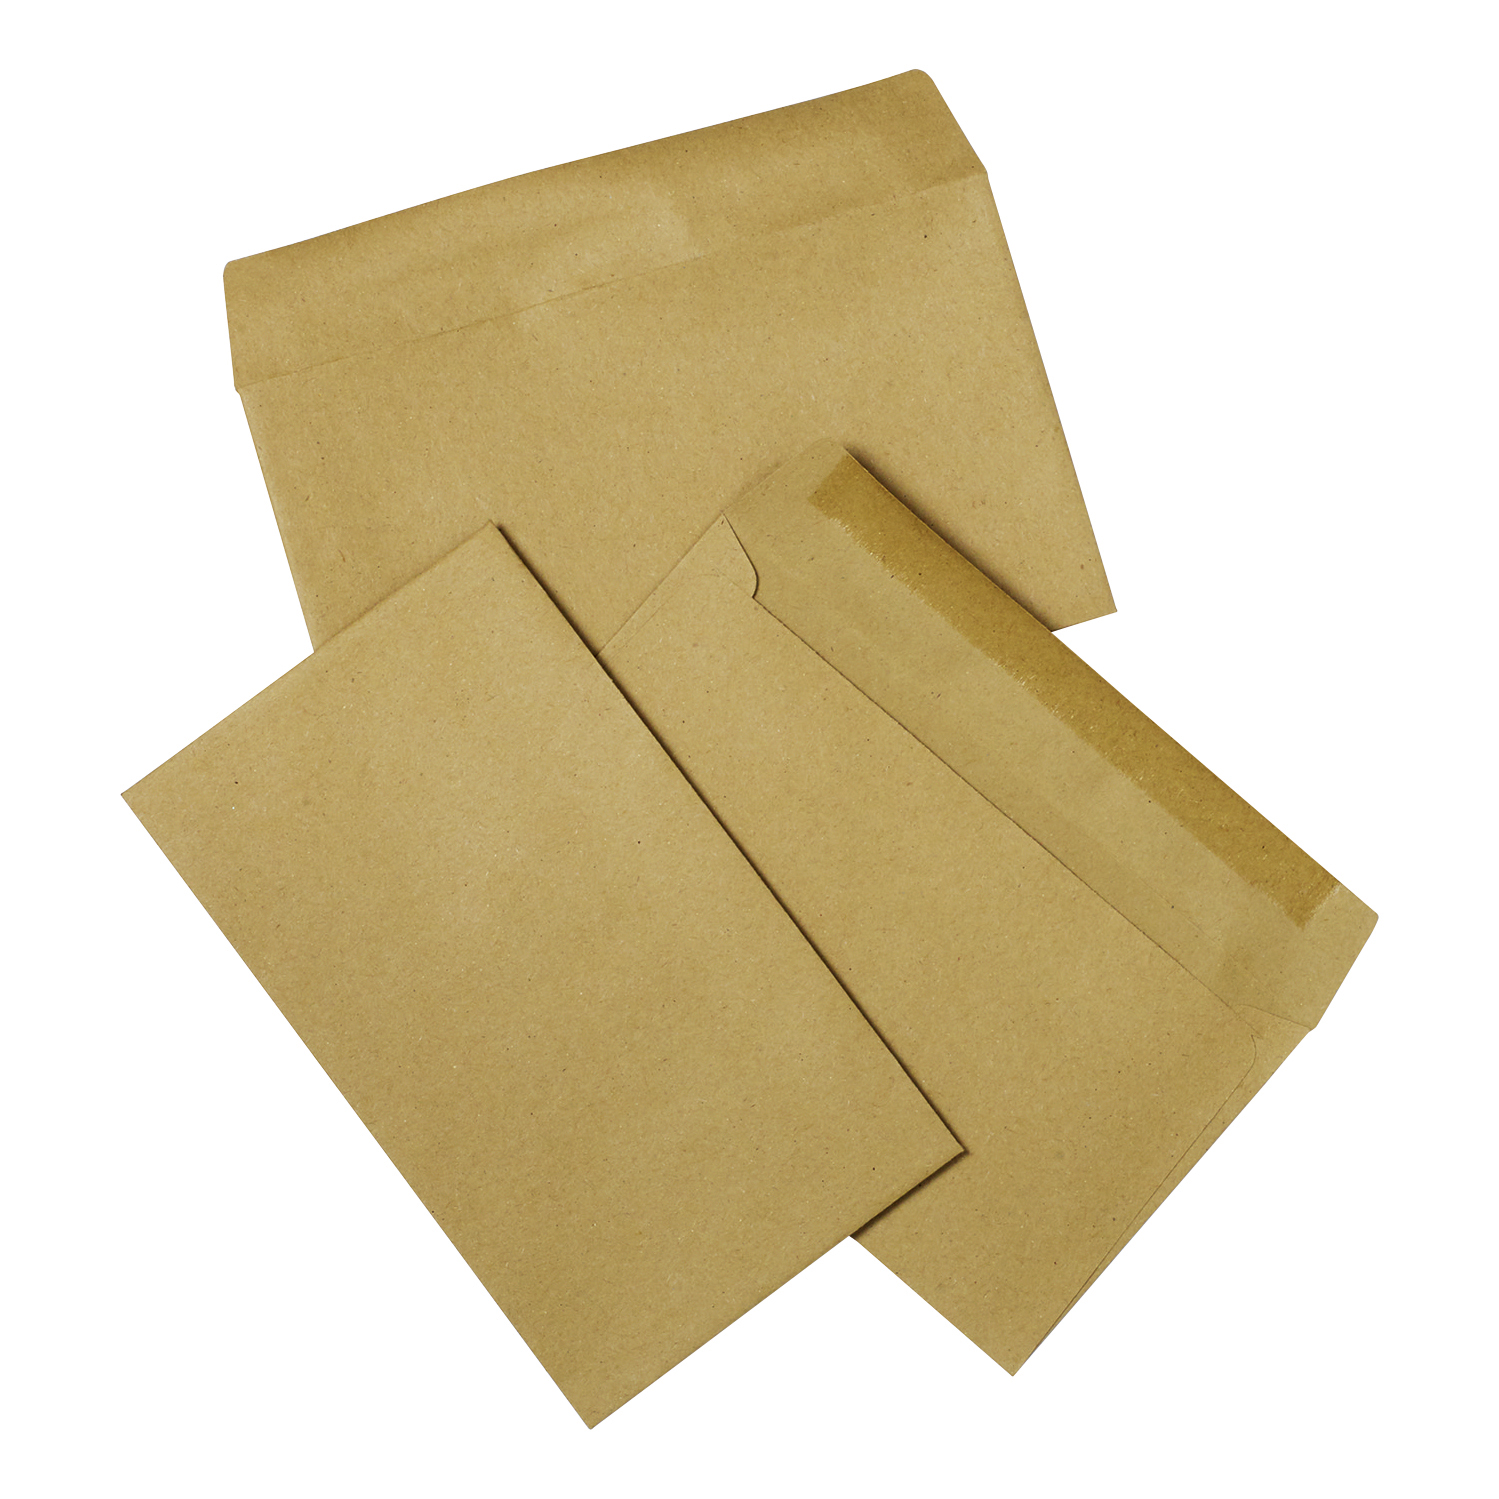 5 Star Office Envelopes Recycled Lightweight 89x152mm Wallet Gummed 75gsm Manilla [Pack 2000]